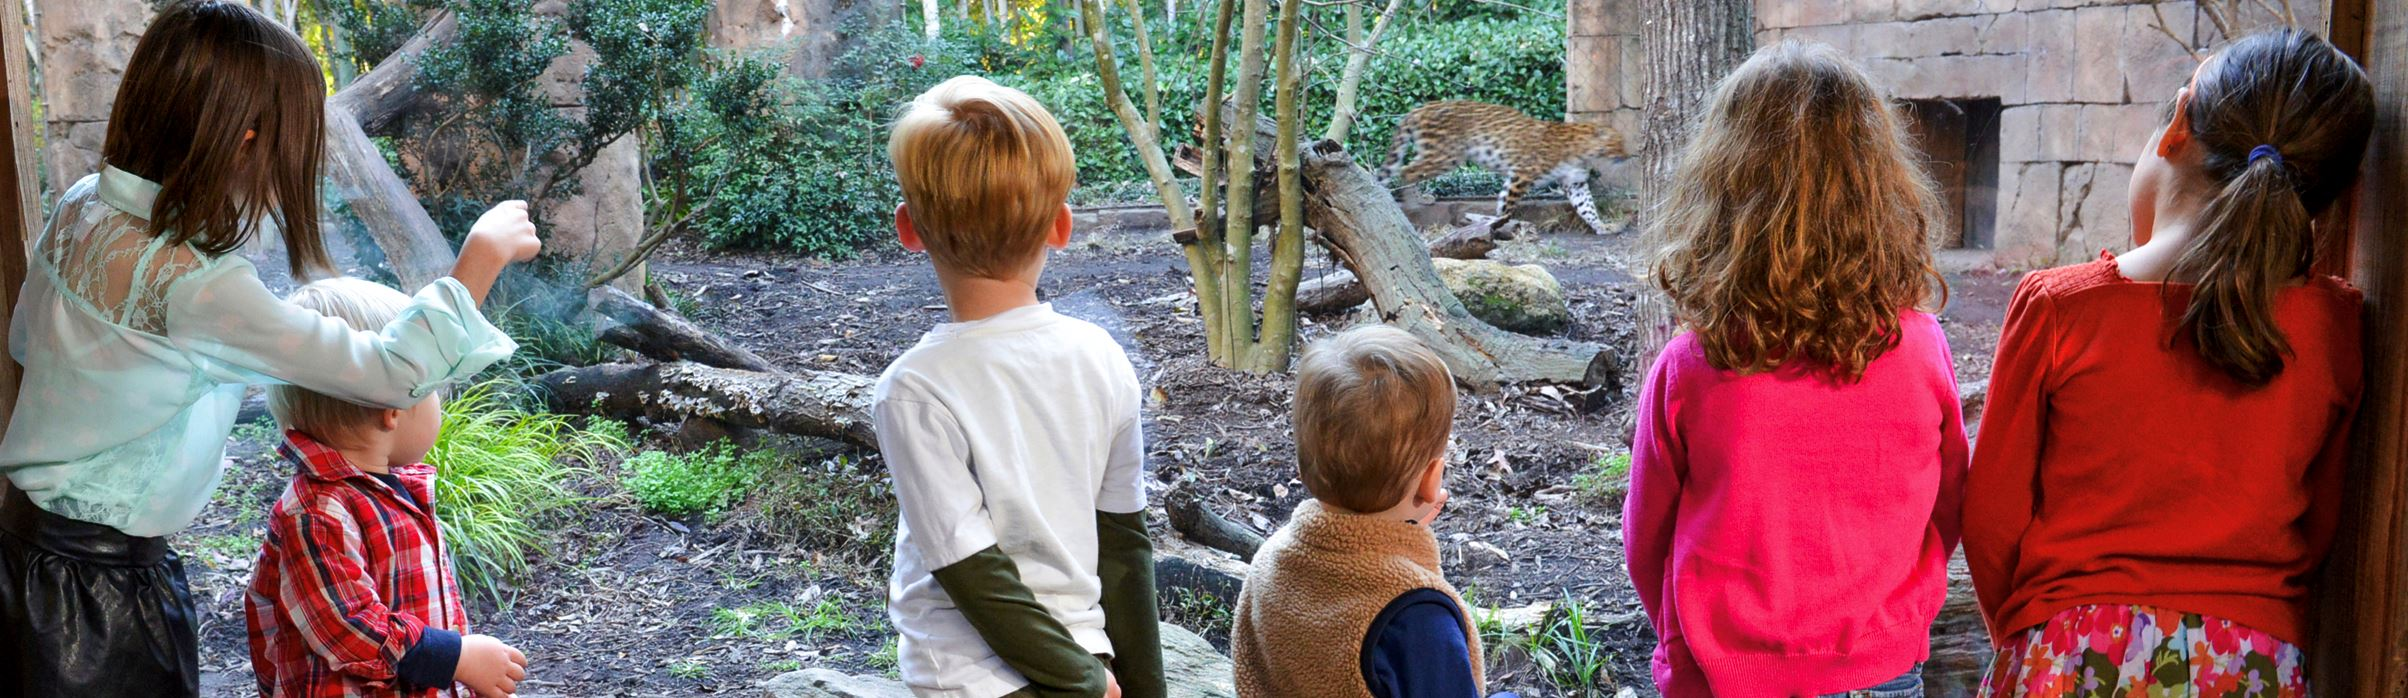 Photo of children watching a leopard